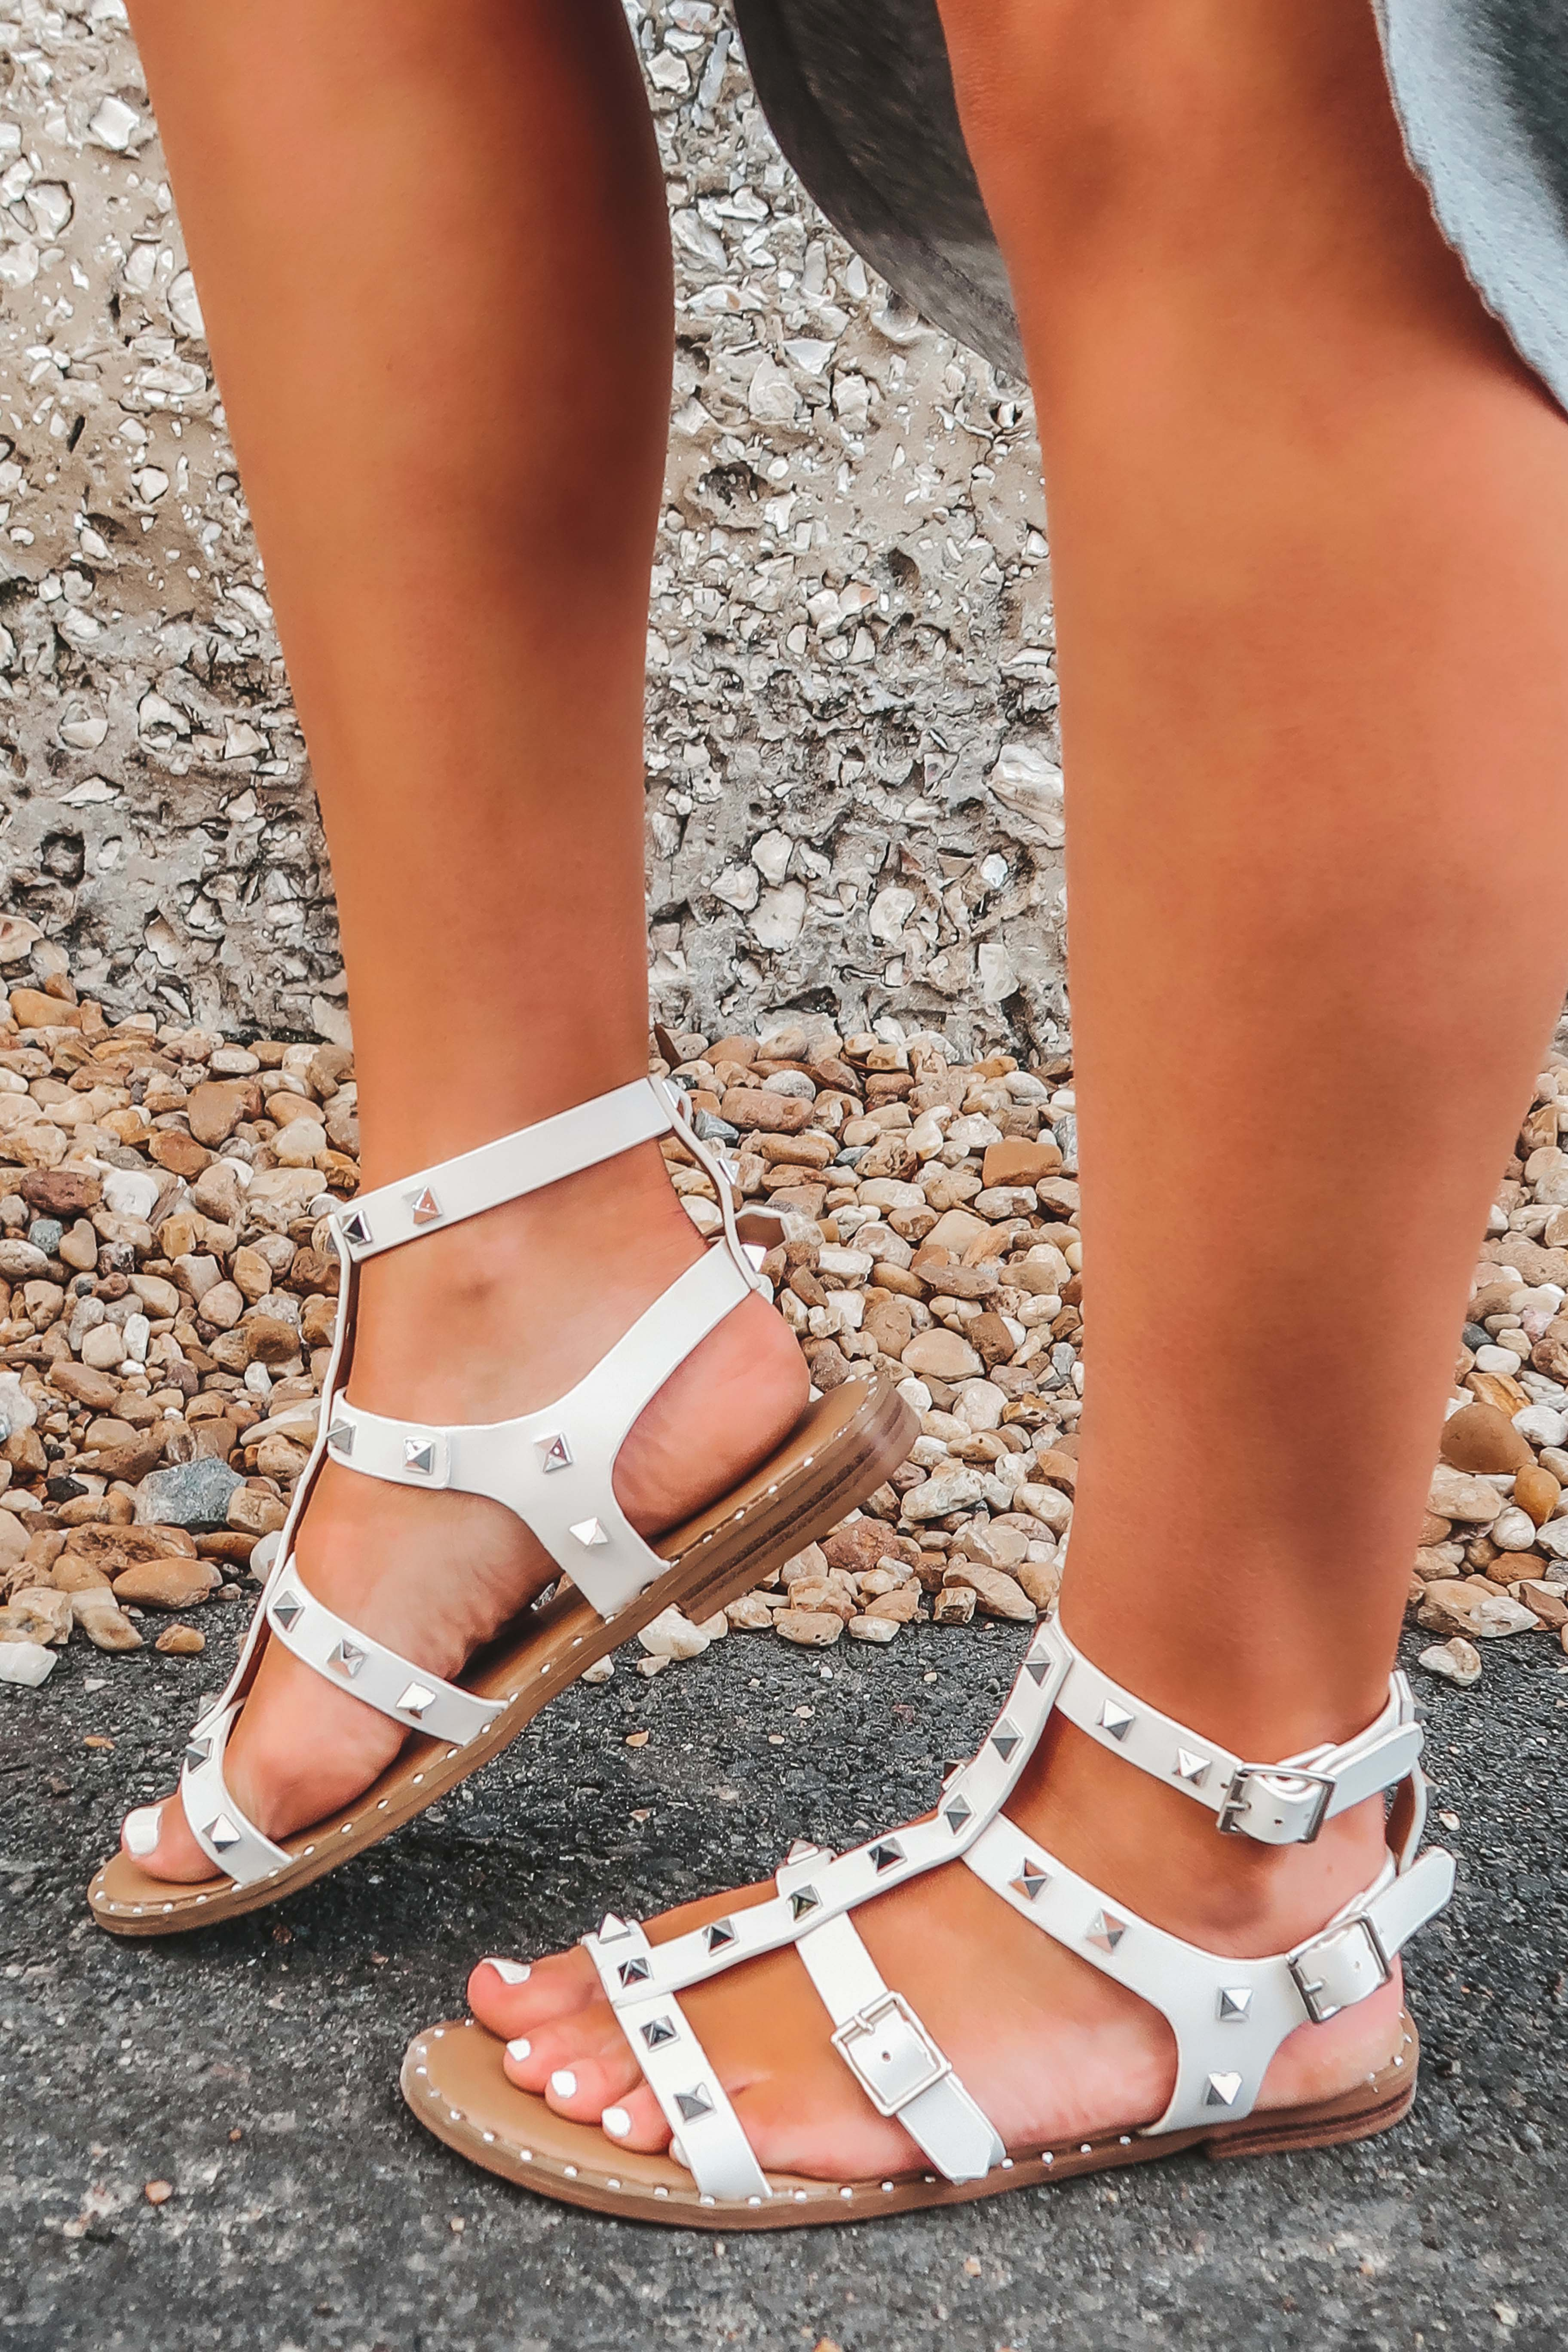 Image of Leave It All Behind Sandals: White/Silver